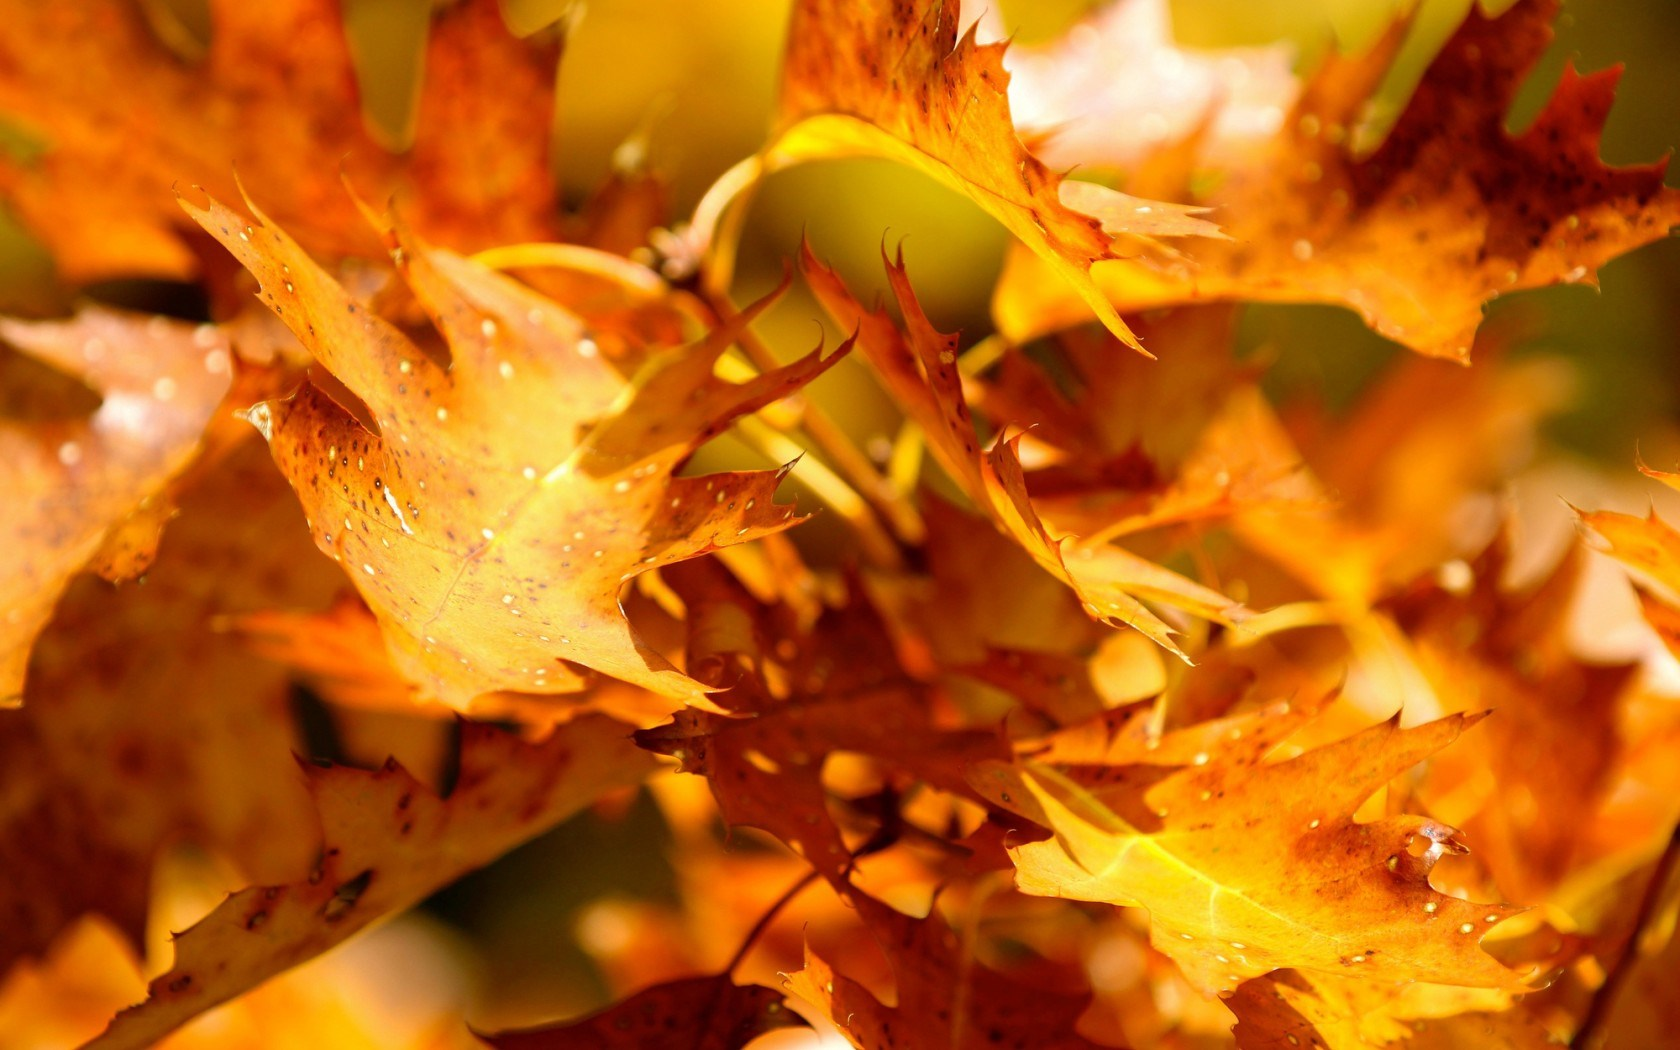 Autumn Leaves   Wallpaper High Definition High Quality Widescreen 1680x1050